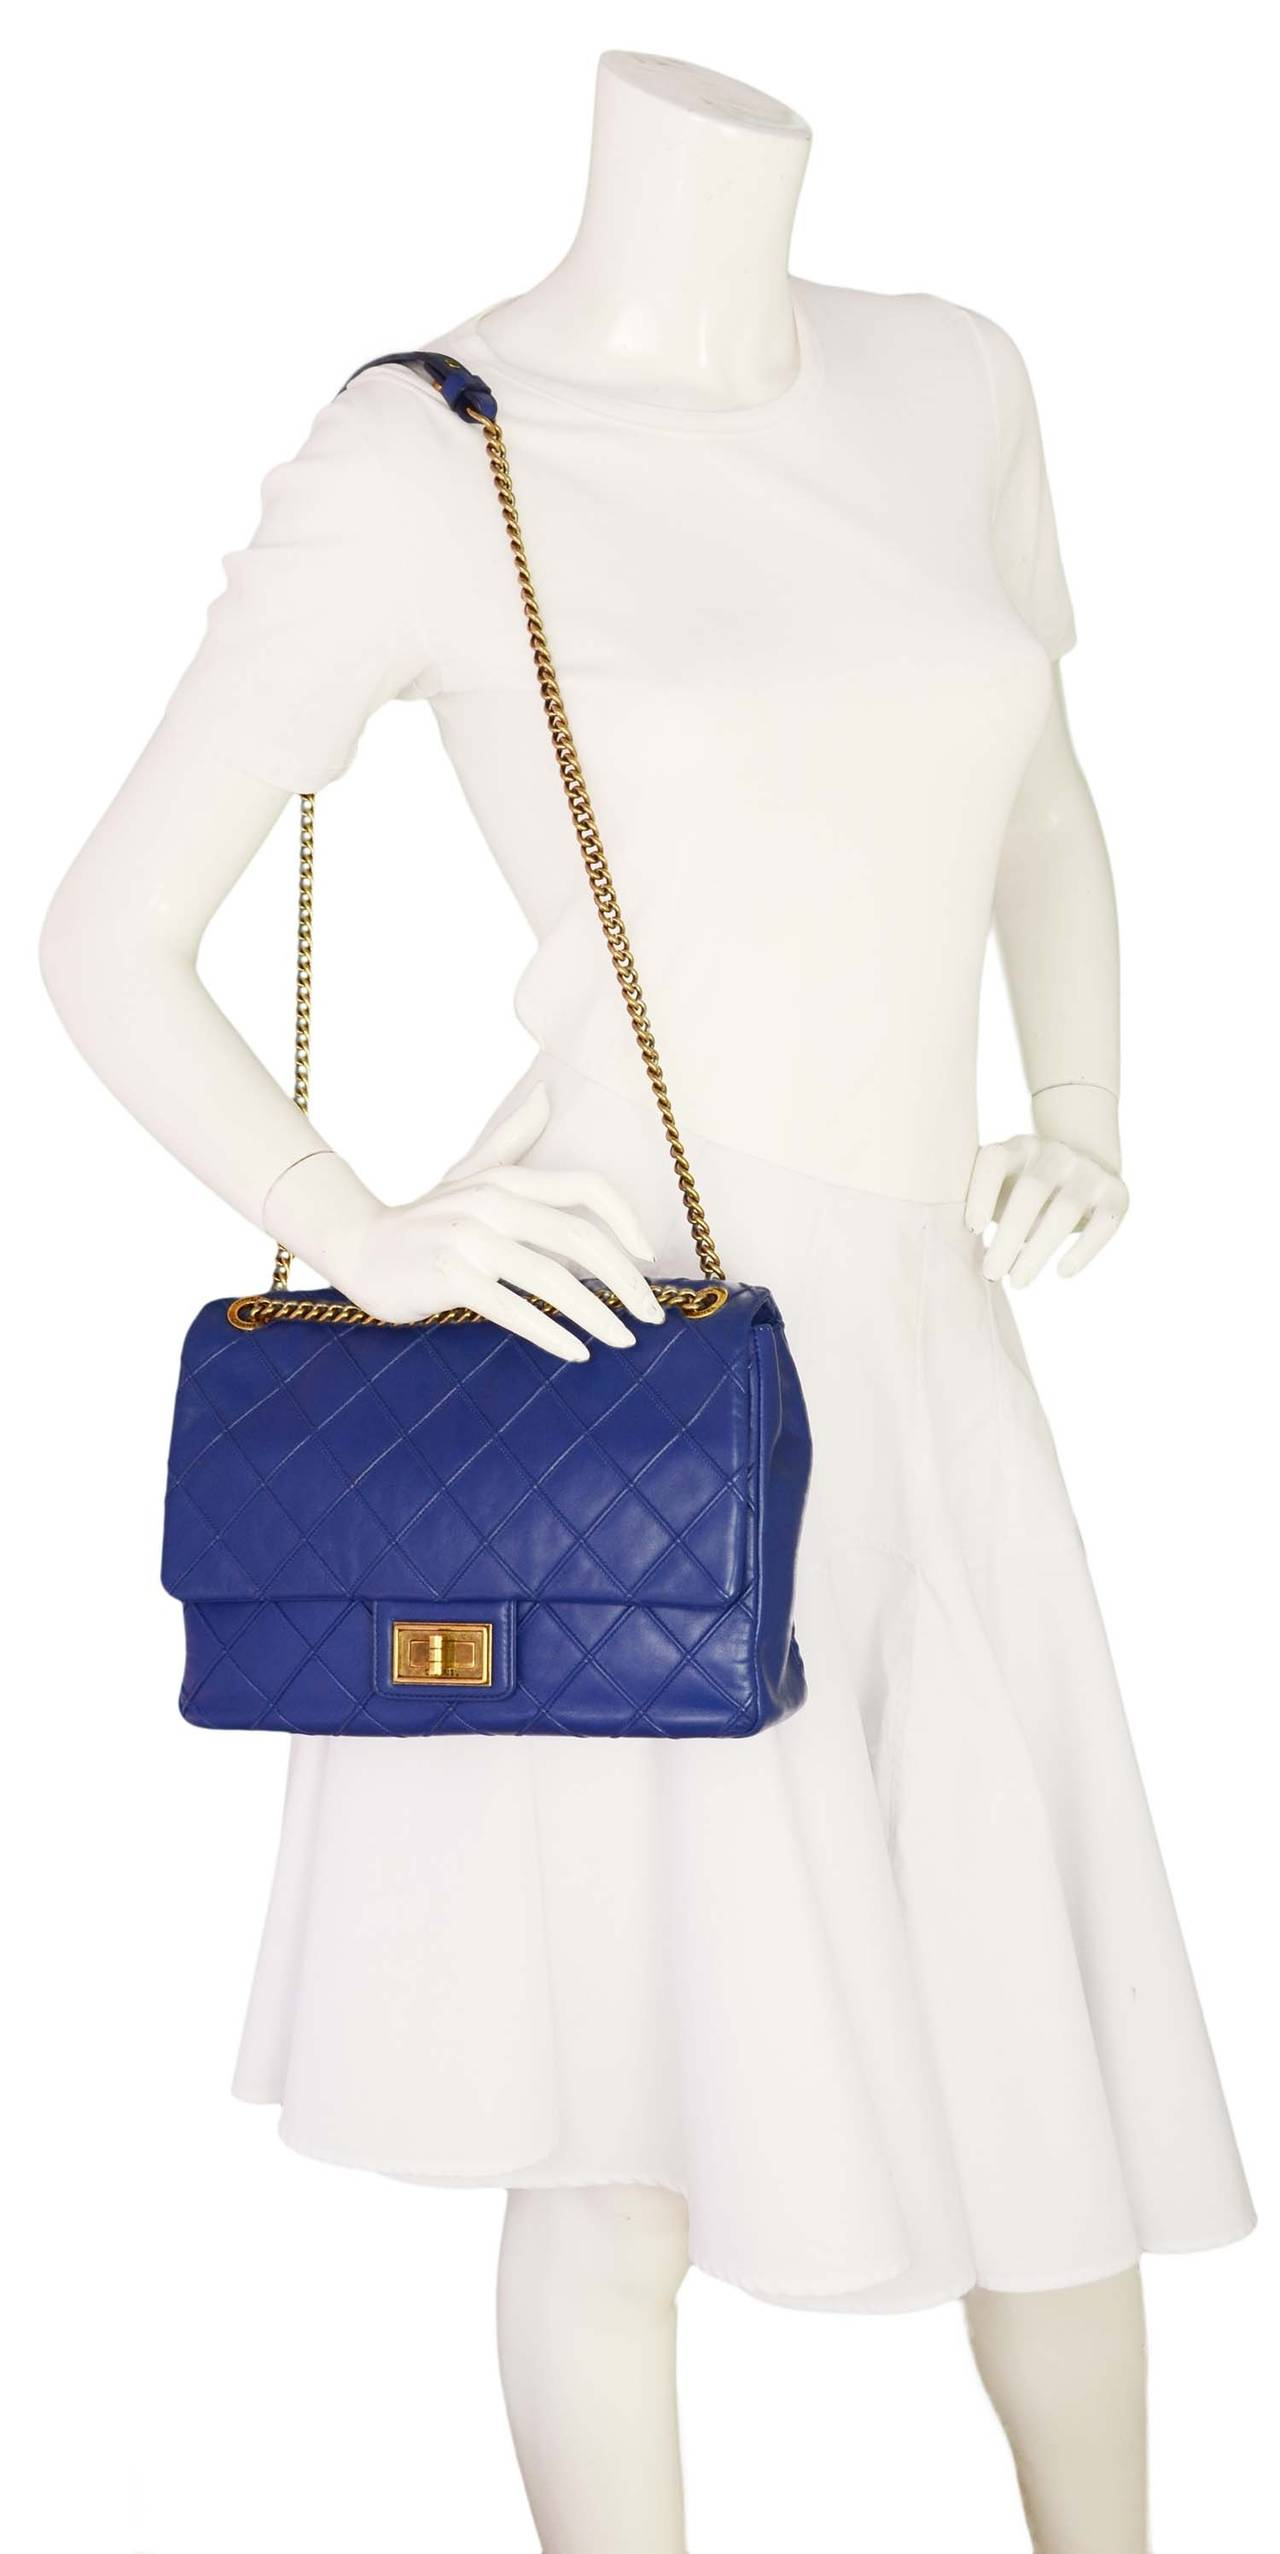 b811b68c45a6 Chanel 2012 Cobalt Blue Quilted Leather Cosmos 2.55 Classic Flap Bag ...